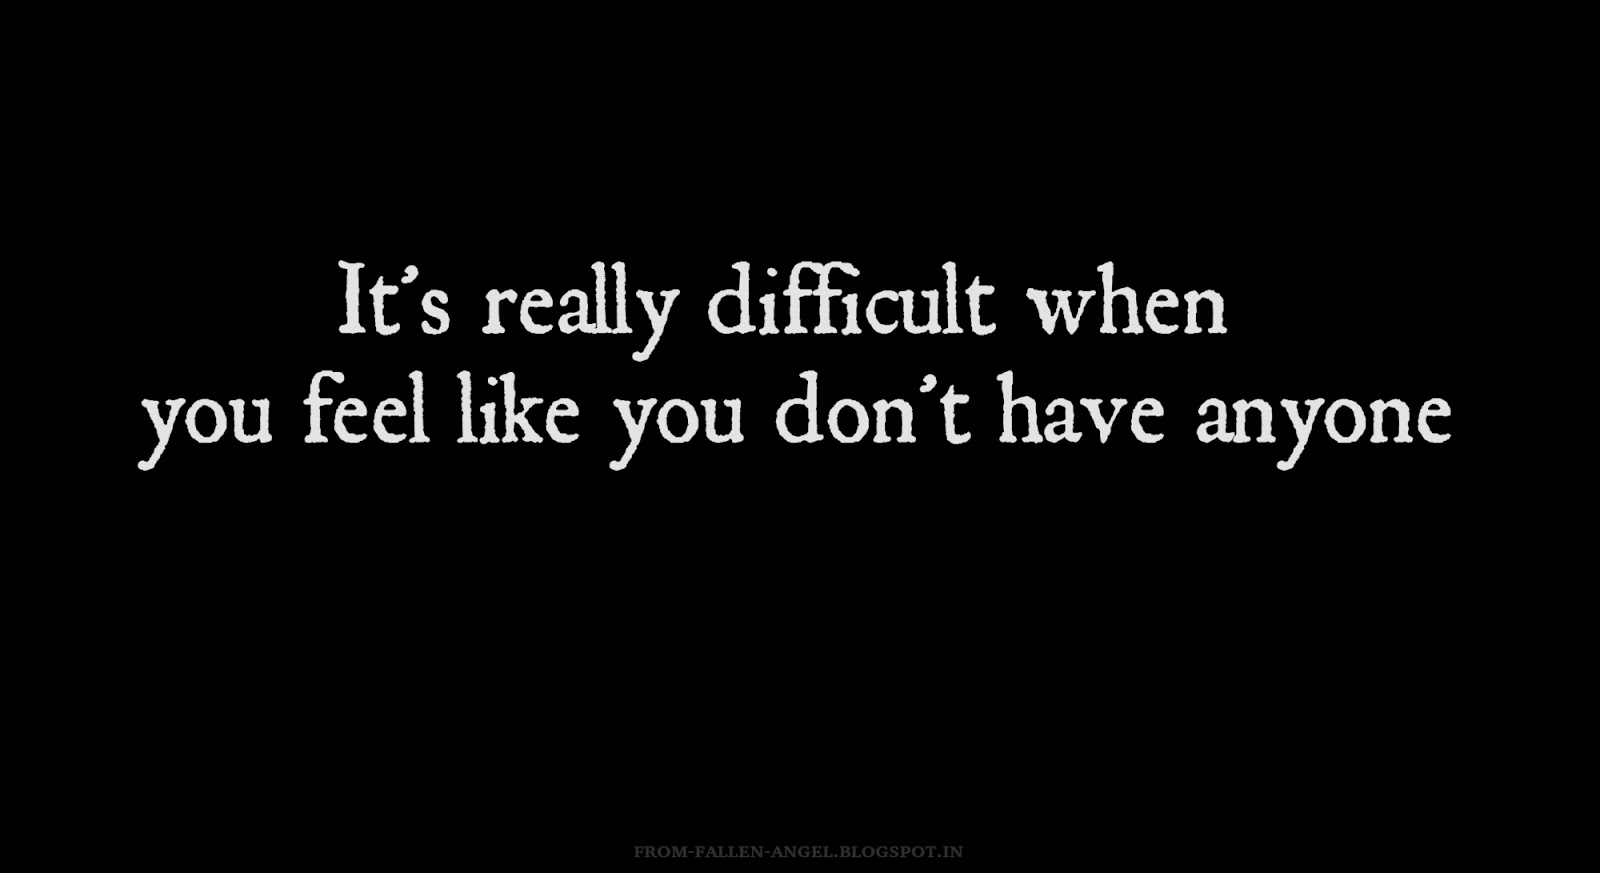 It's really difficult when you feel like you don't have anyone